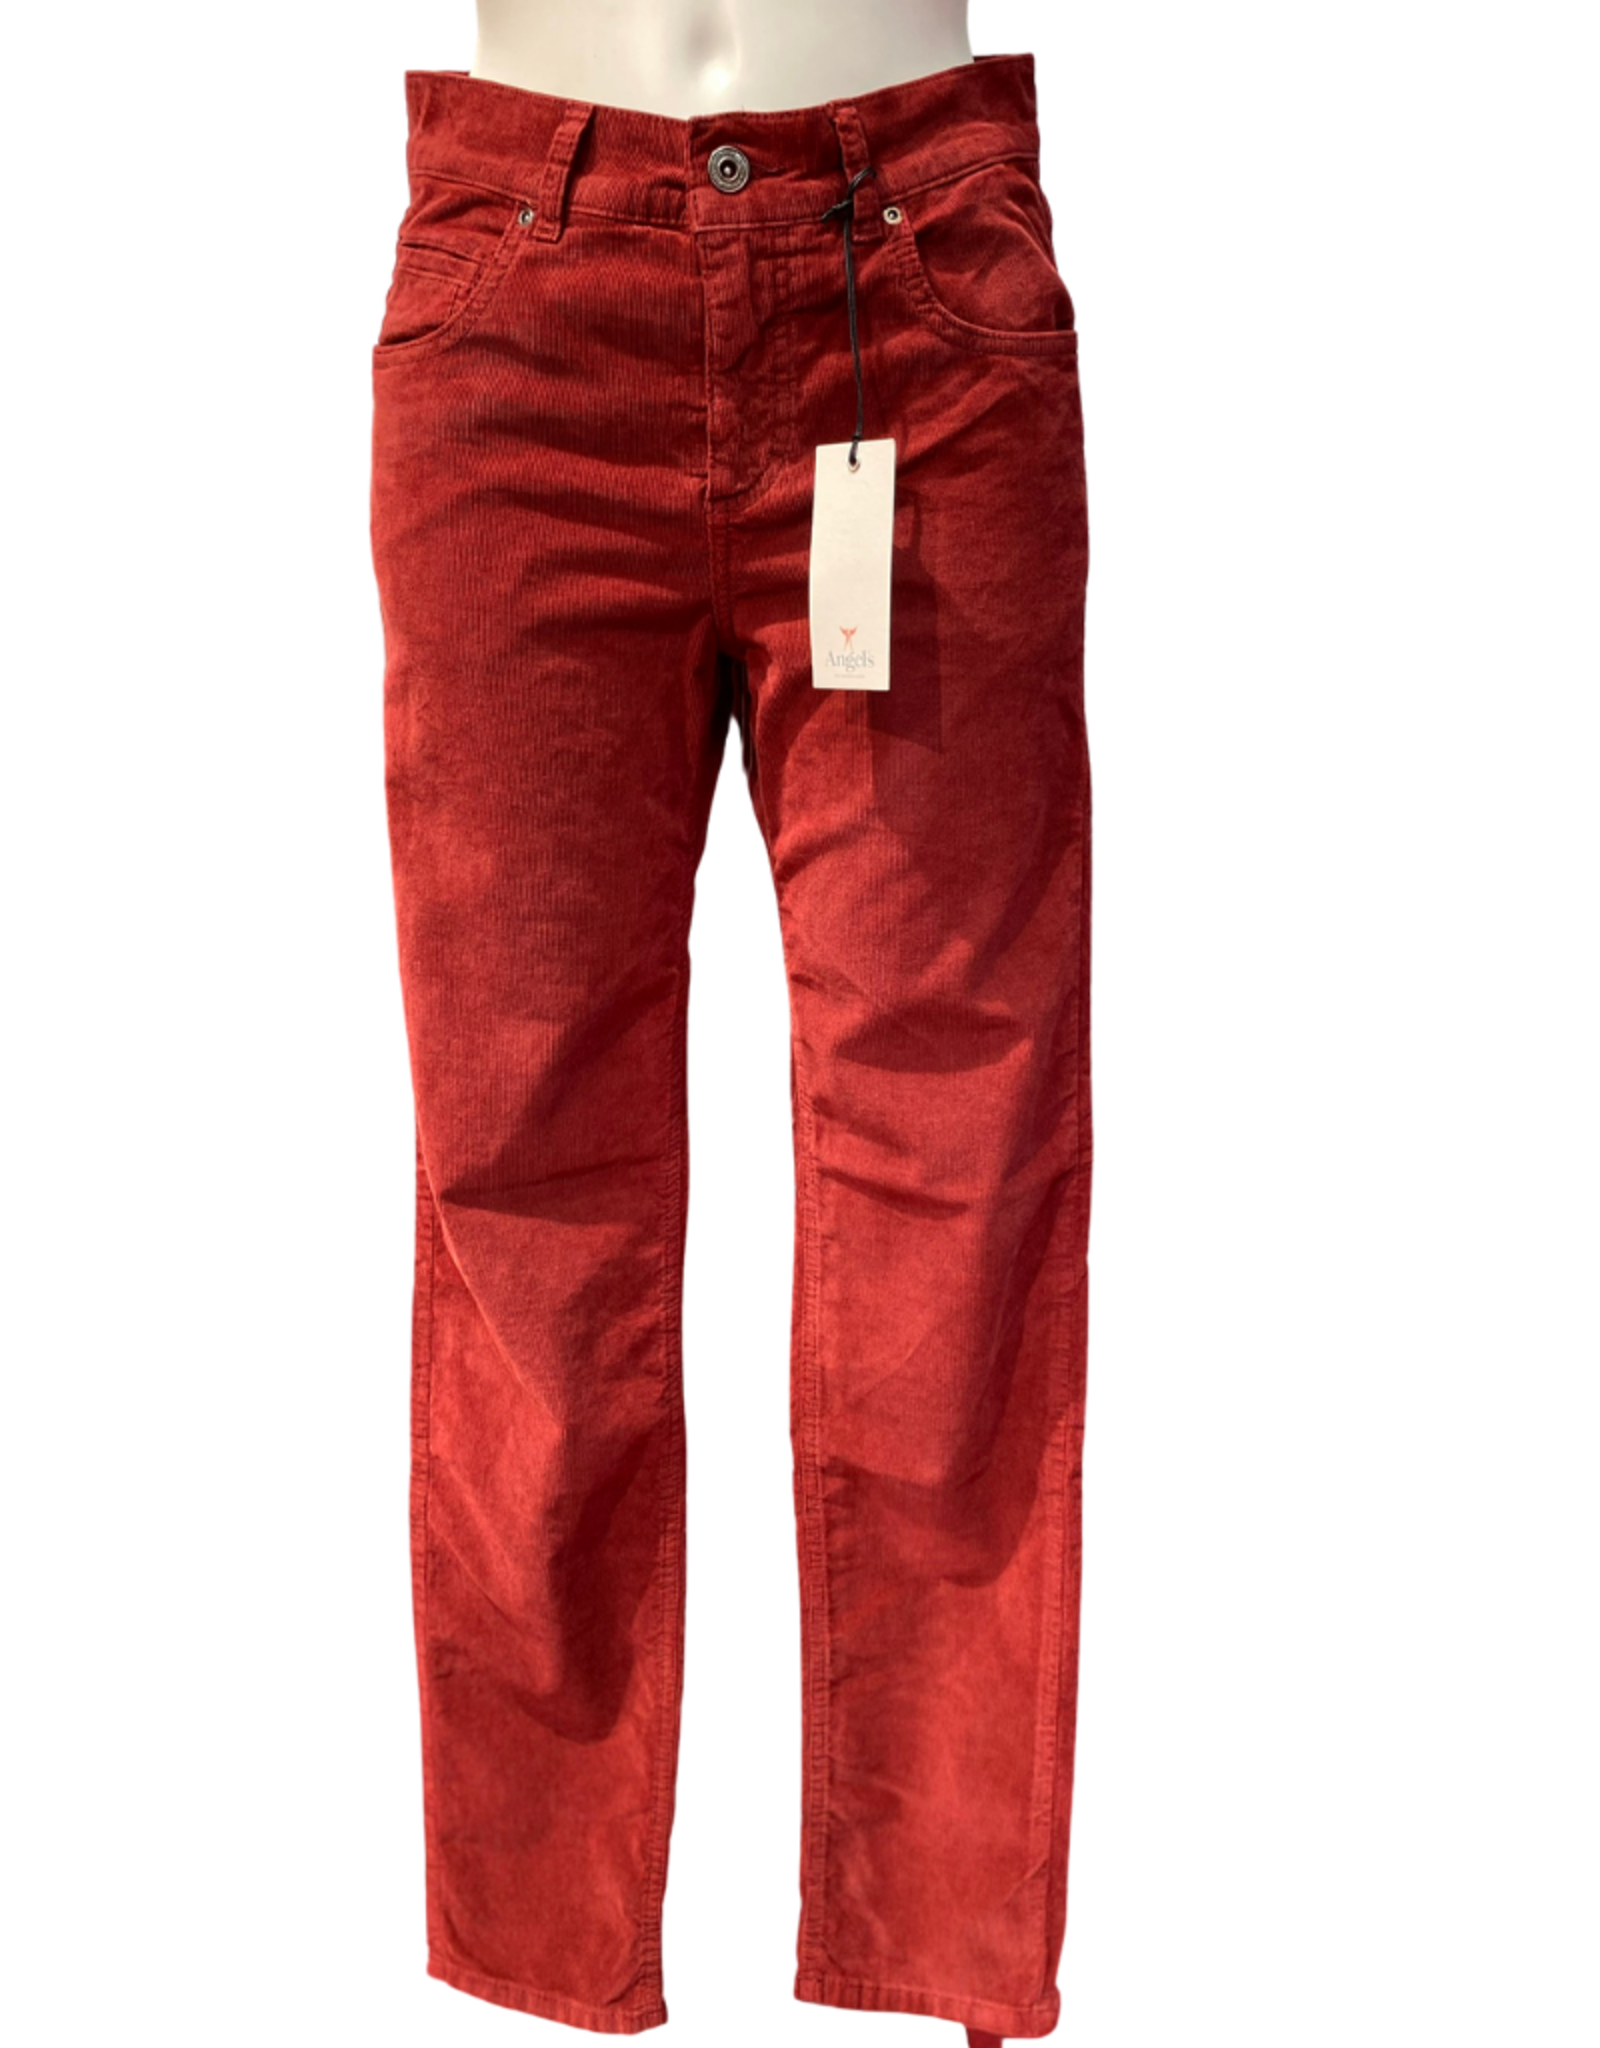 Angels jeans 340030-560/6395 Cici